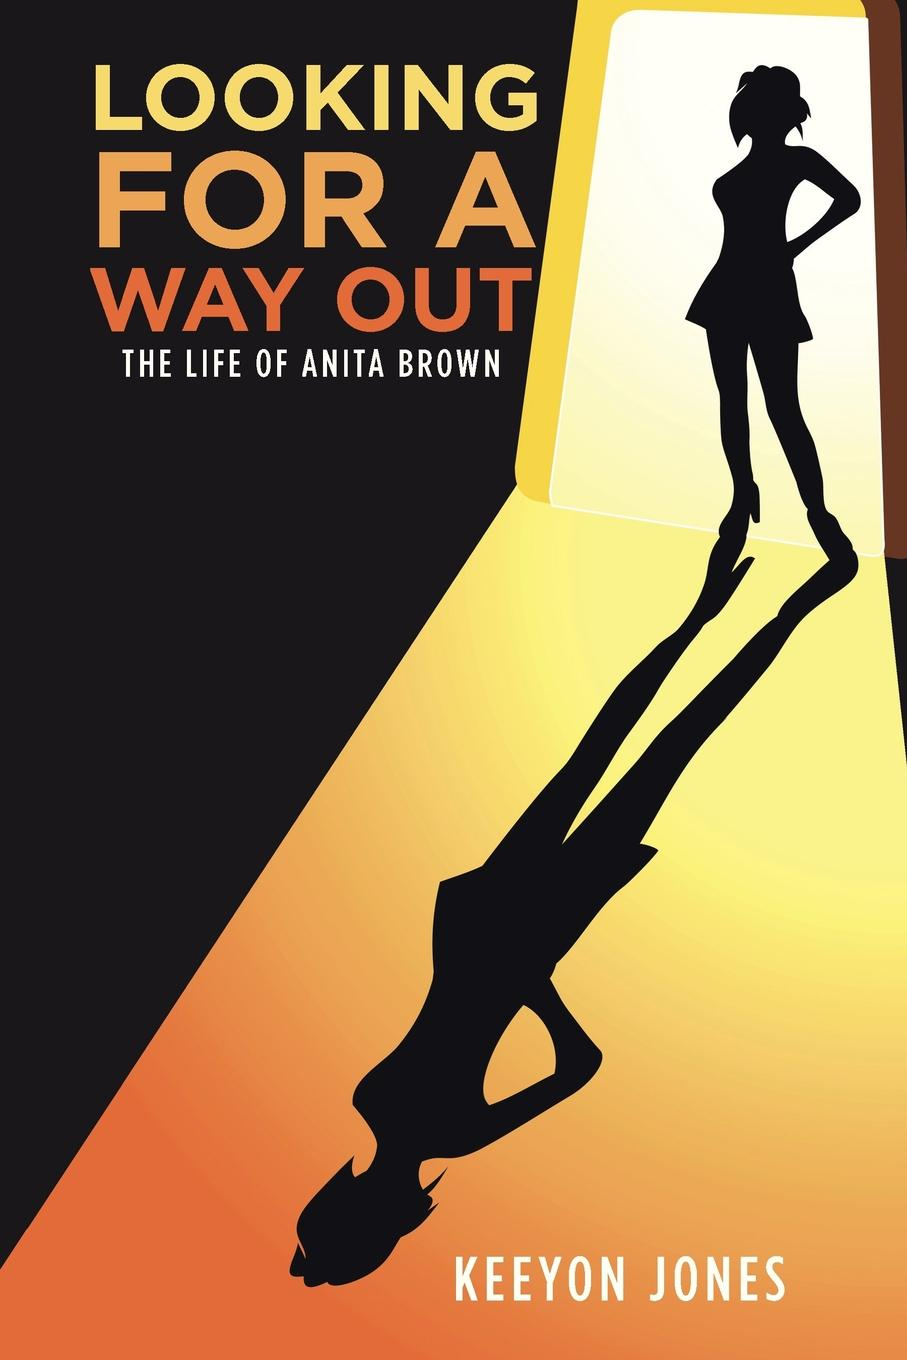 Keeyon Jones Looking for a Way Out. The Life of Anita Brown